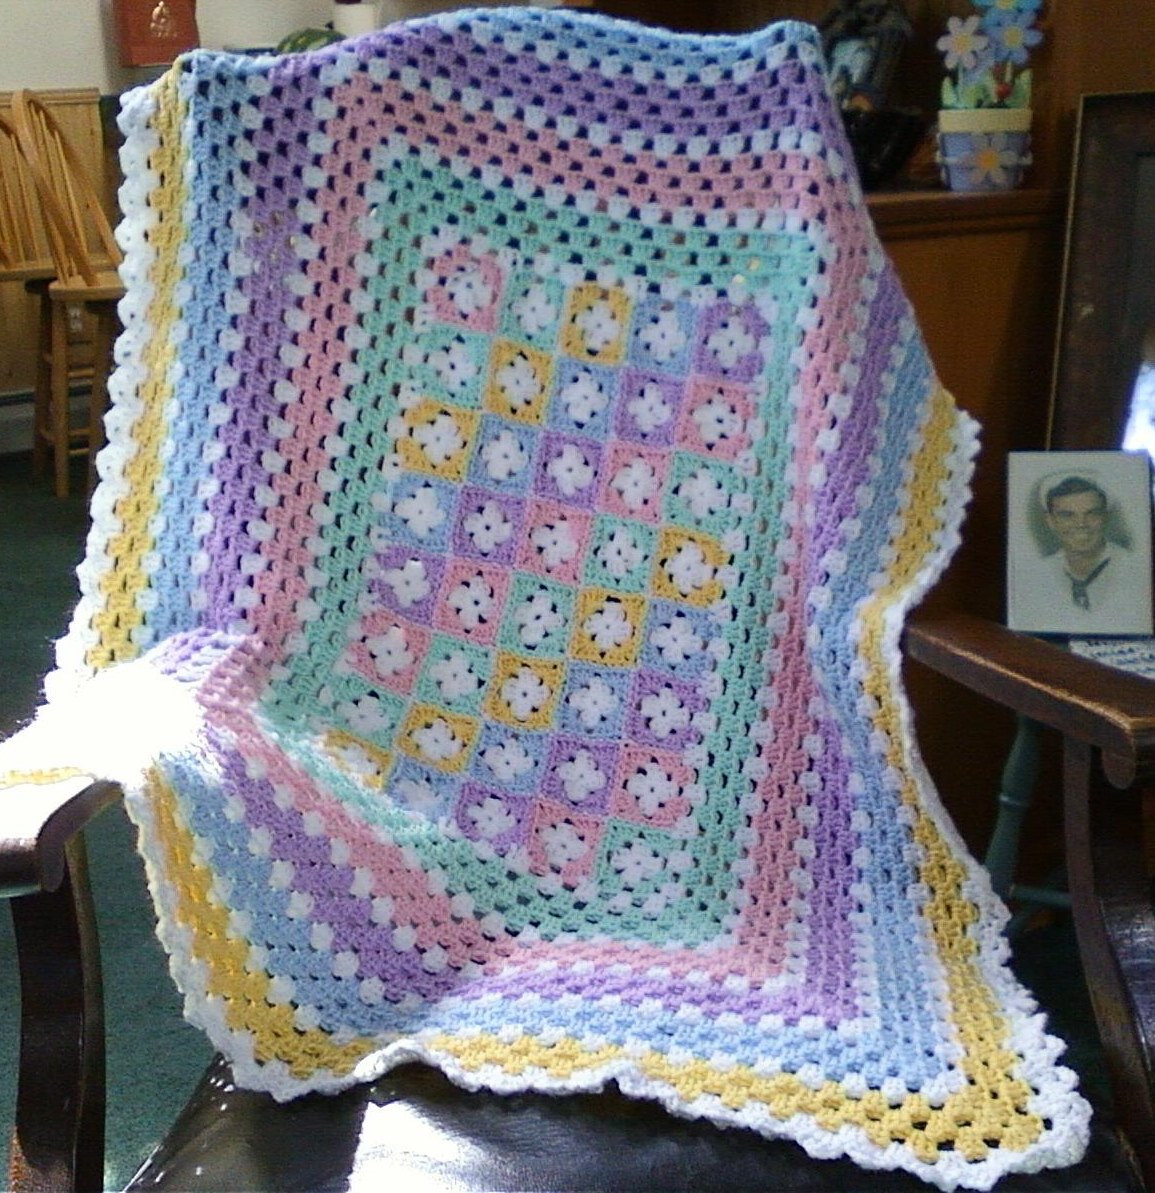 Crochet Baby Afghan Awesome Pastel Crochet Baby Afghan Of Top 41 Models Crochet Baby Afghan